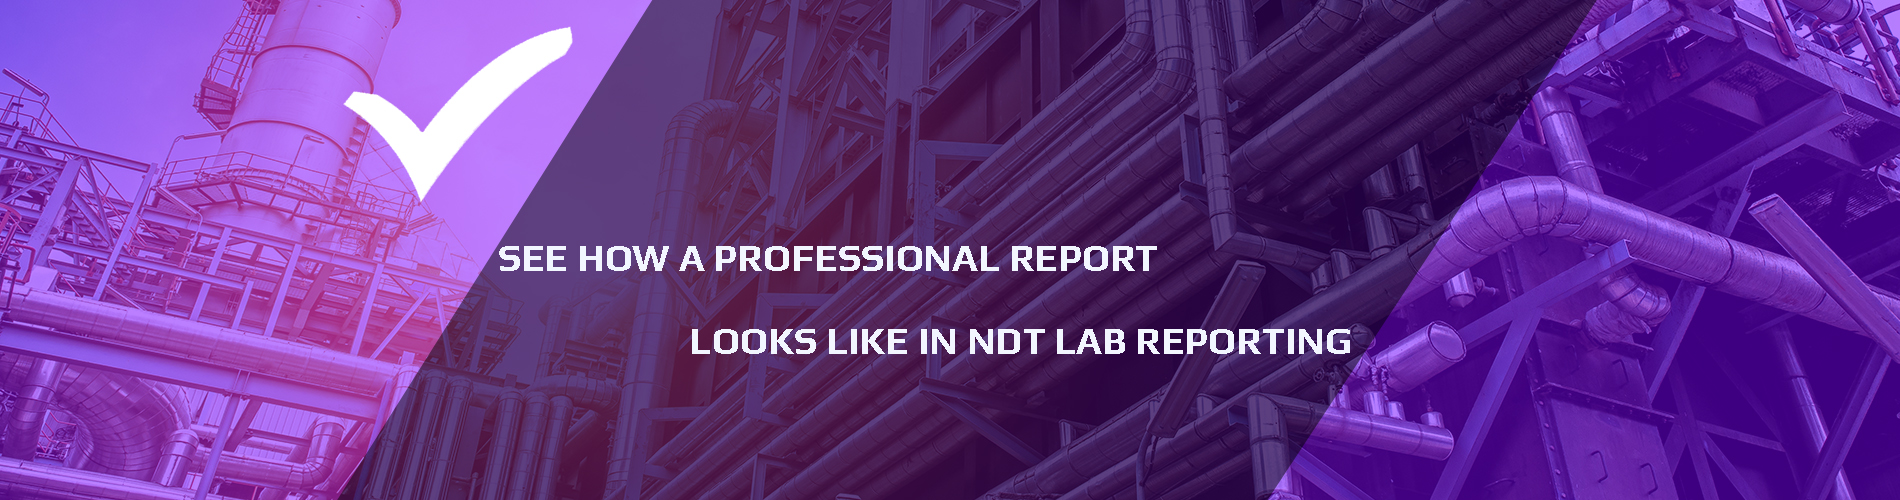 see-how-a-professional-report-looks-like-in-ndtlabreporting-full